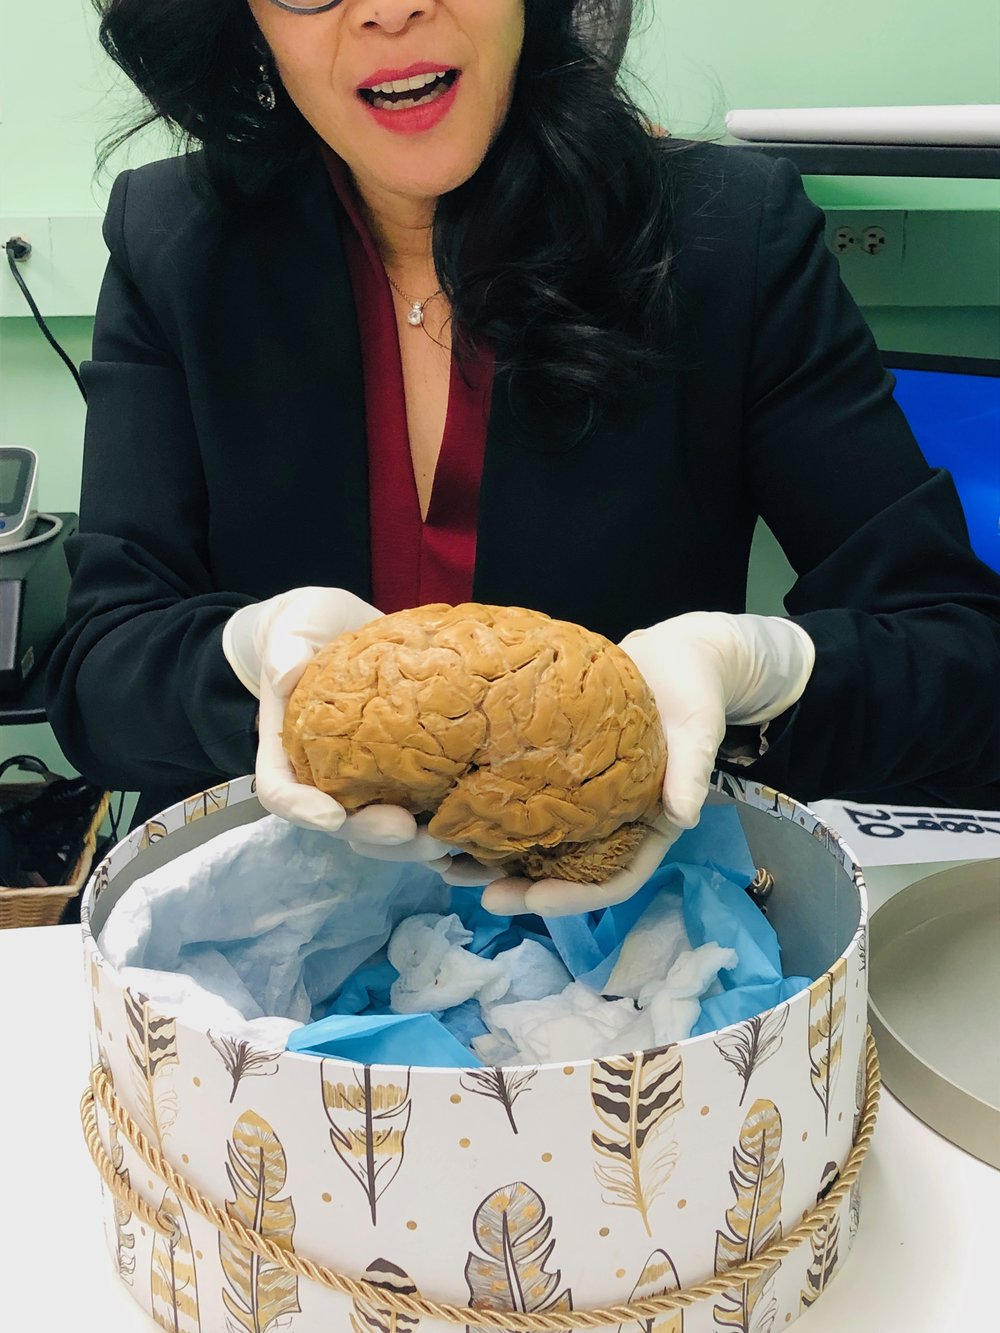 Dr. Wendy Suzuki explains the impact of physical activity on the brain during our team's trip to her lab at NYU.